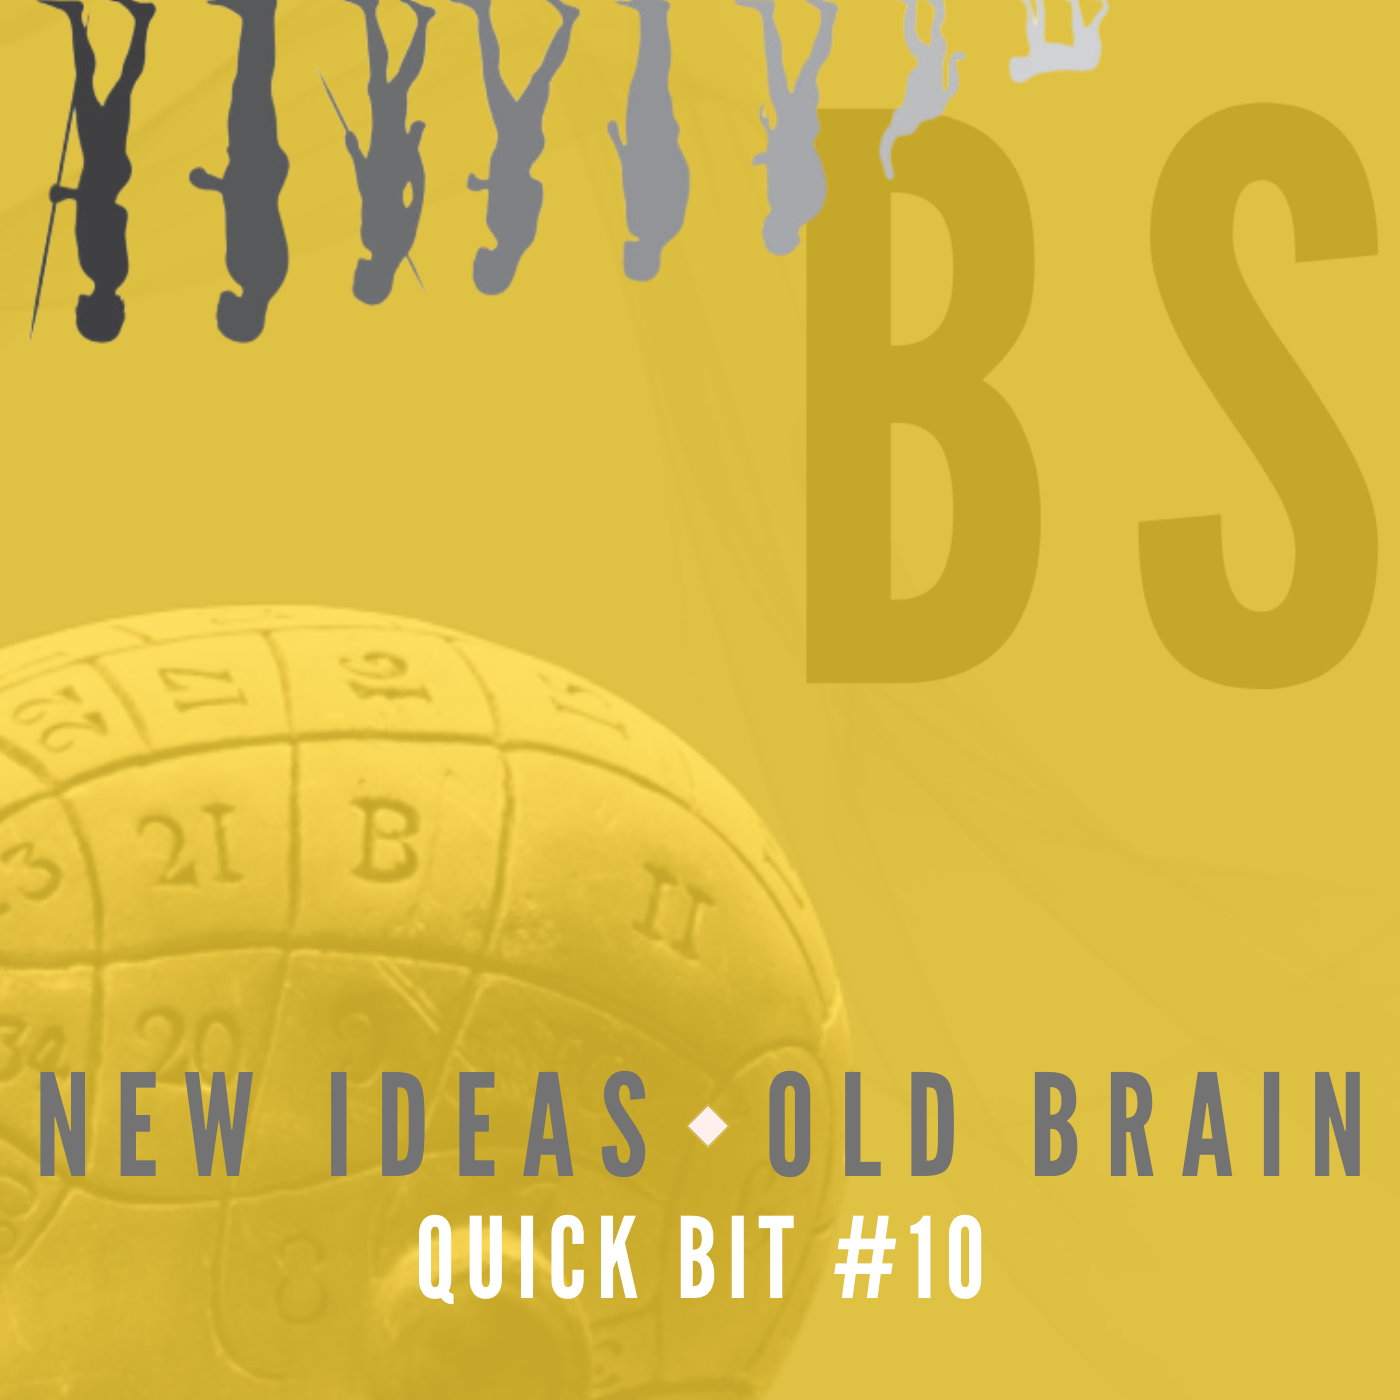 New Ideas, Old Brain Quick Bit #10: Disease Avoidance and Outgroup Derogation in a Time of COVID-19